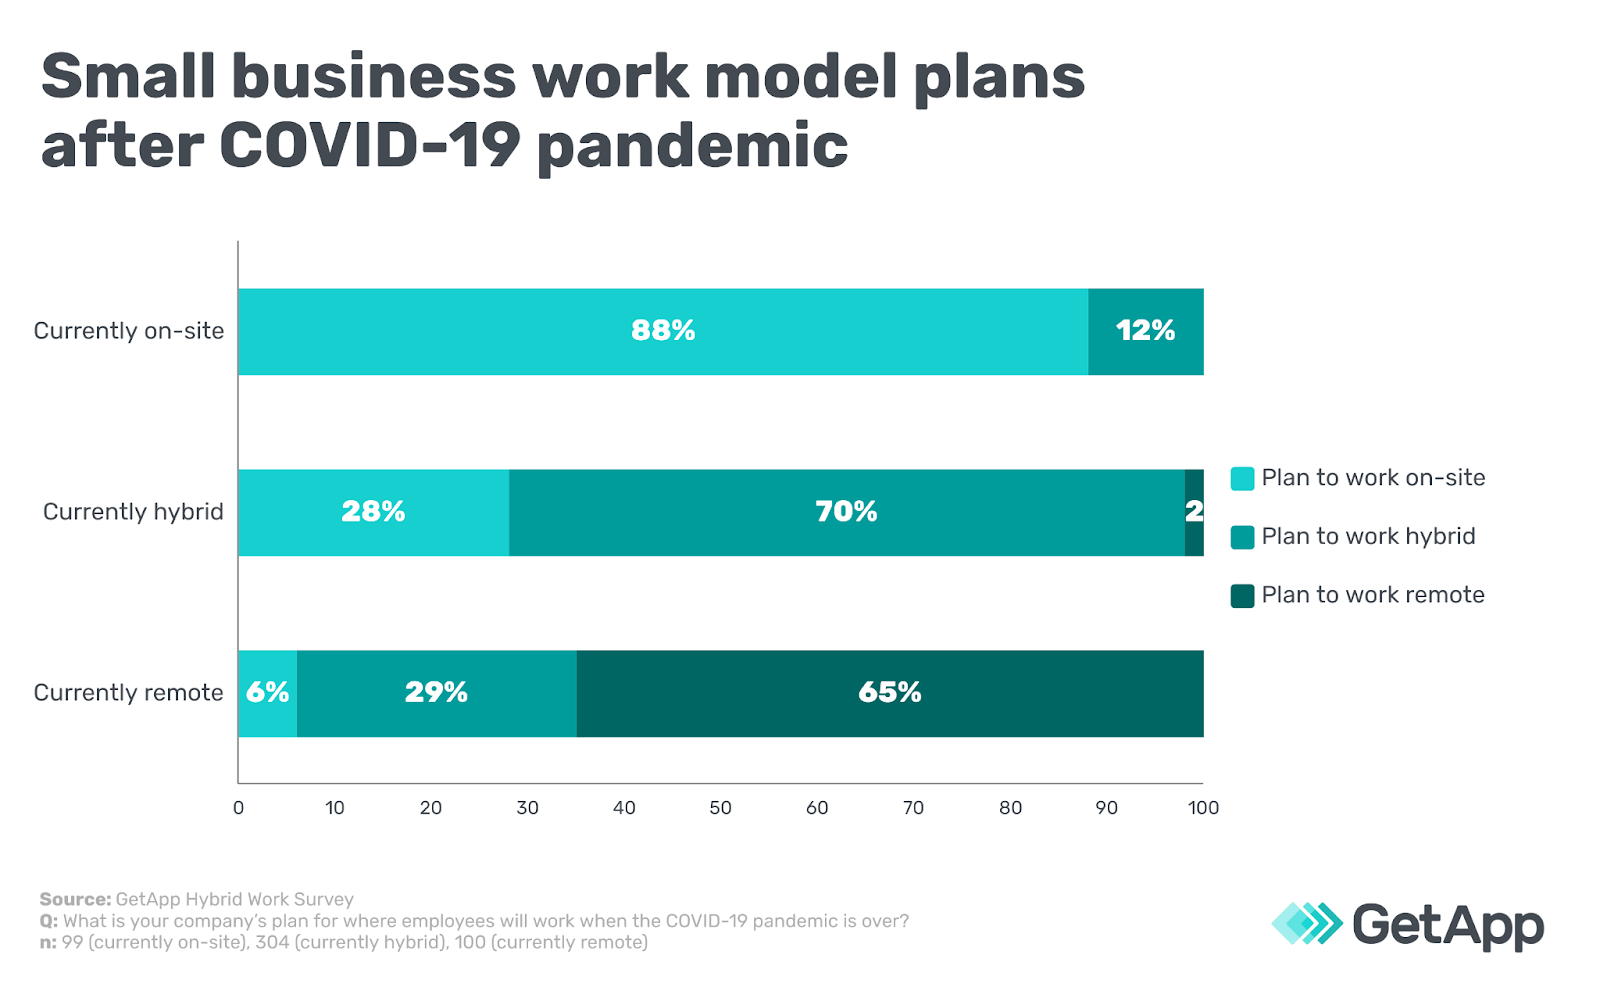 Small business work model plans after COVID-19 pandemic